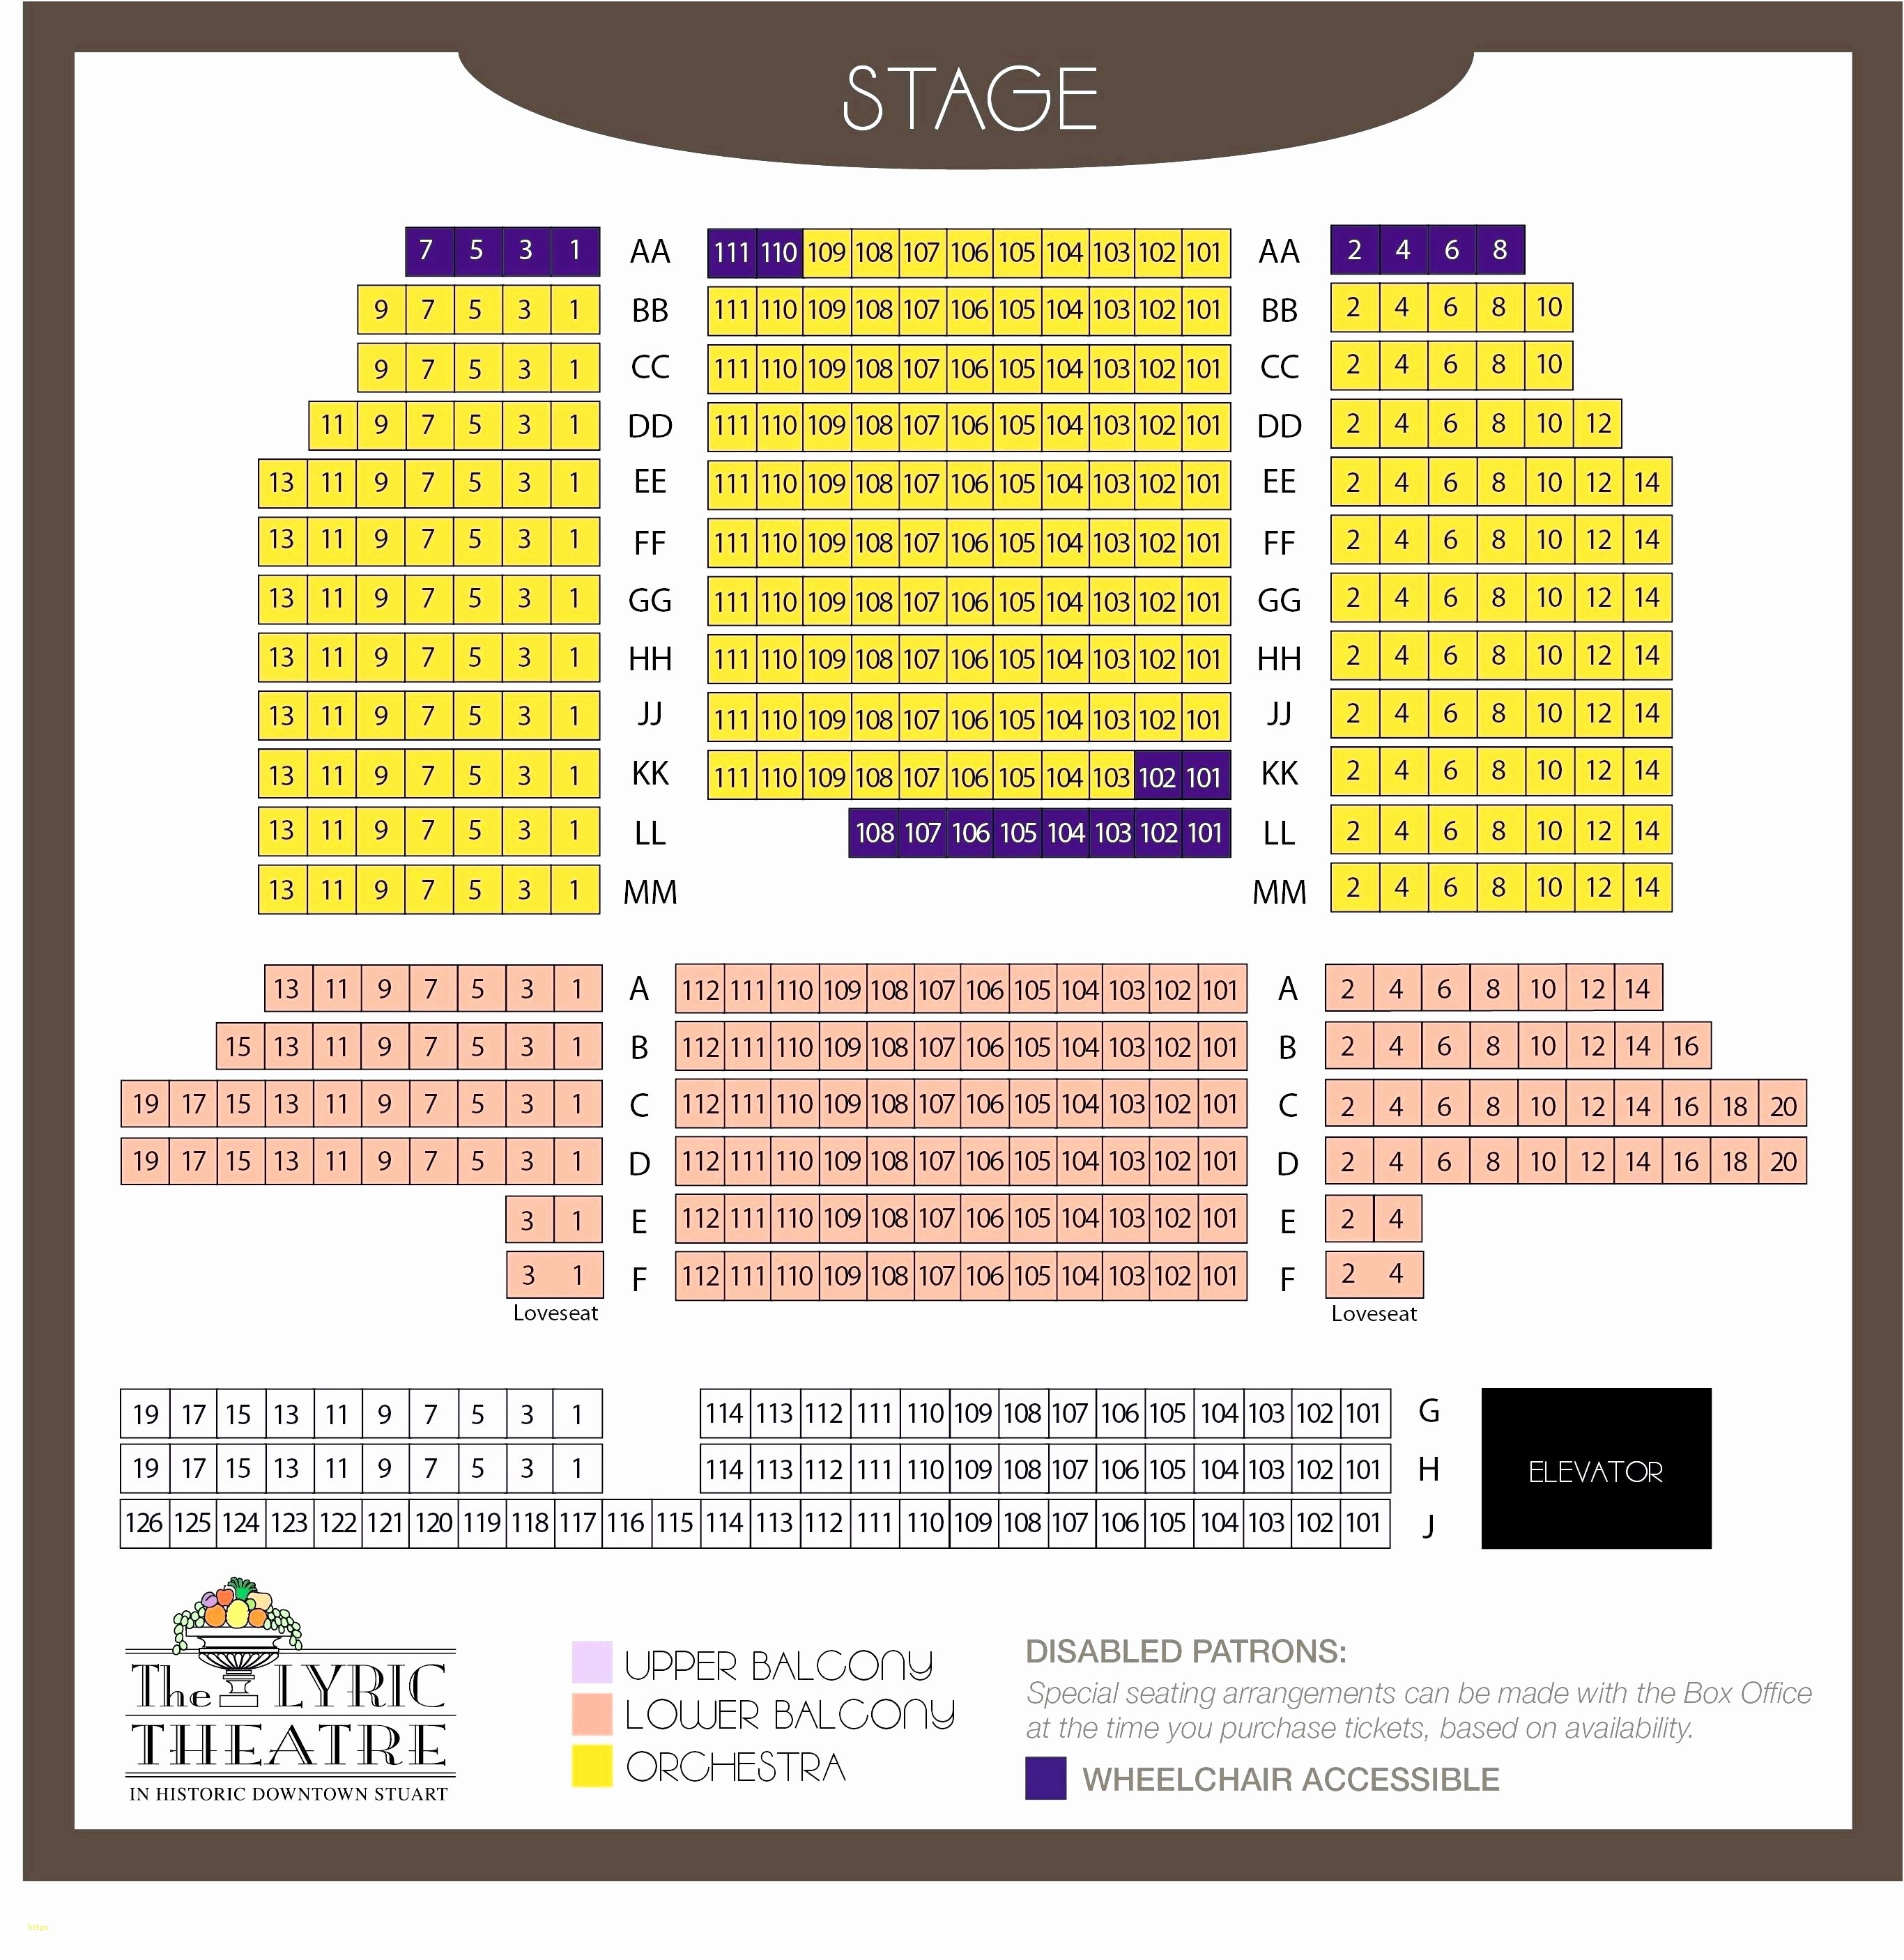 Choir Seating Chart Template Inspirational 35 Elegant Miller Auditorium Seating Chart Models